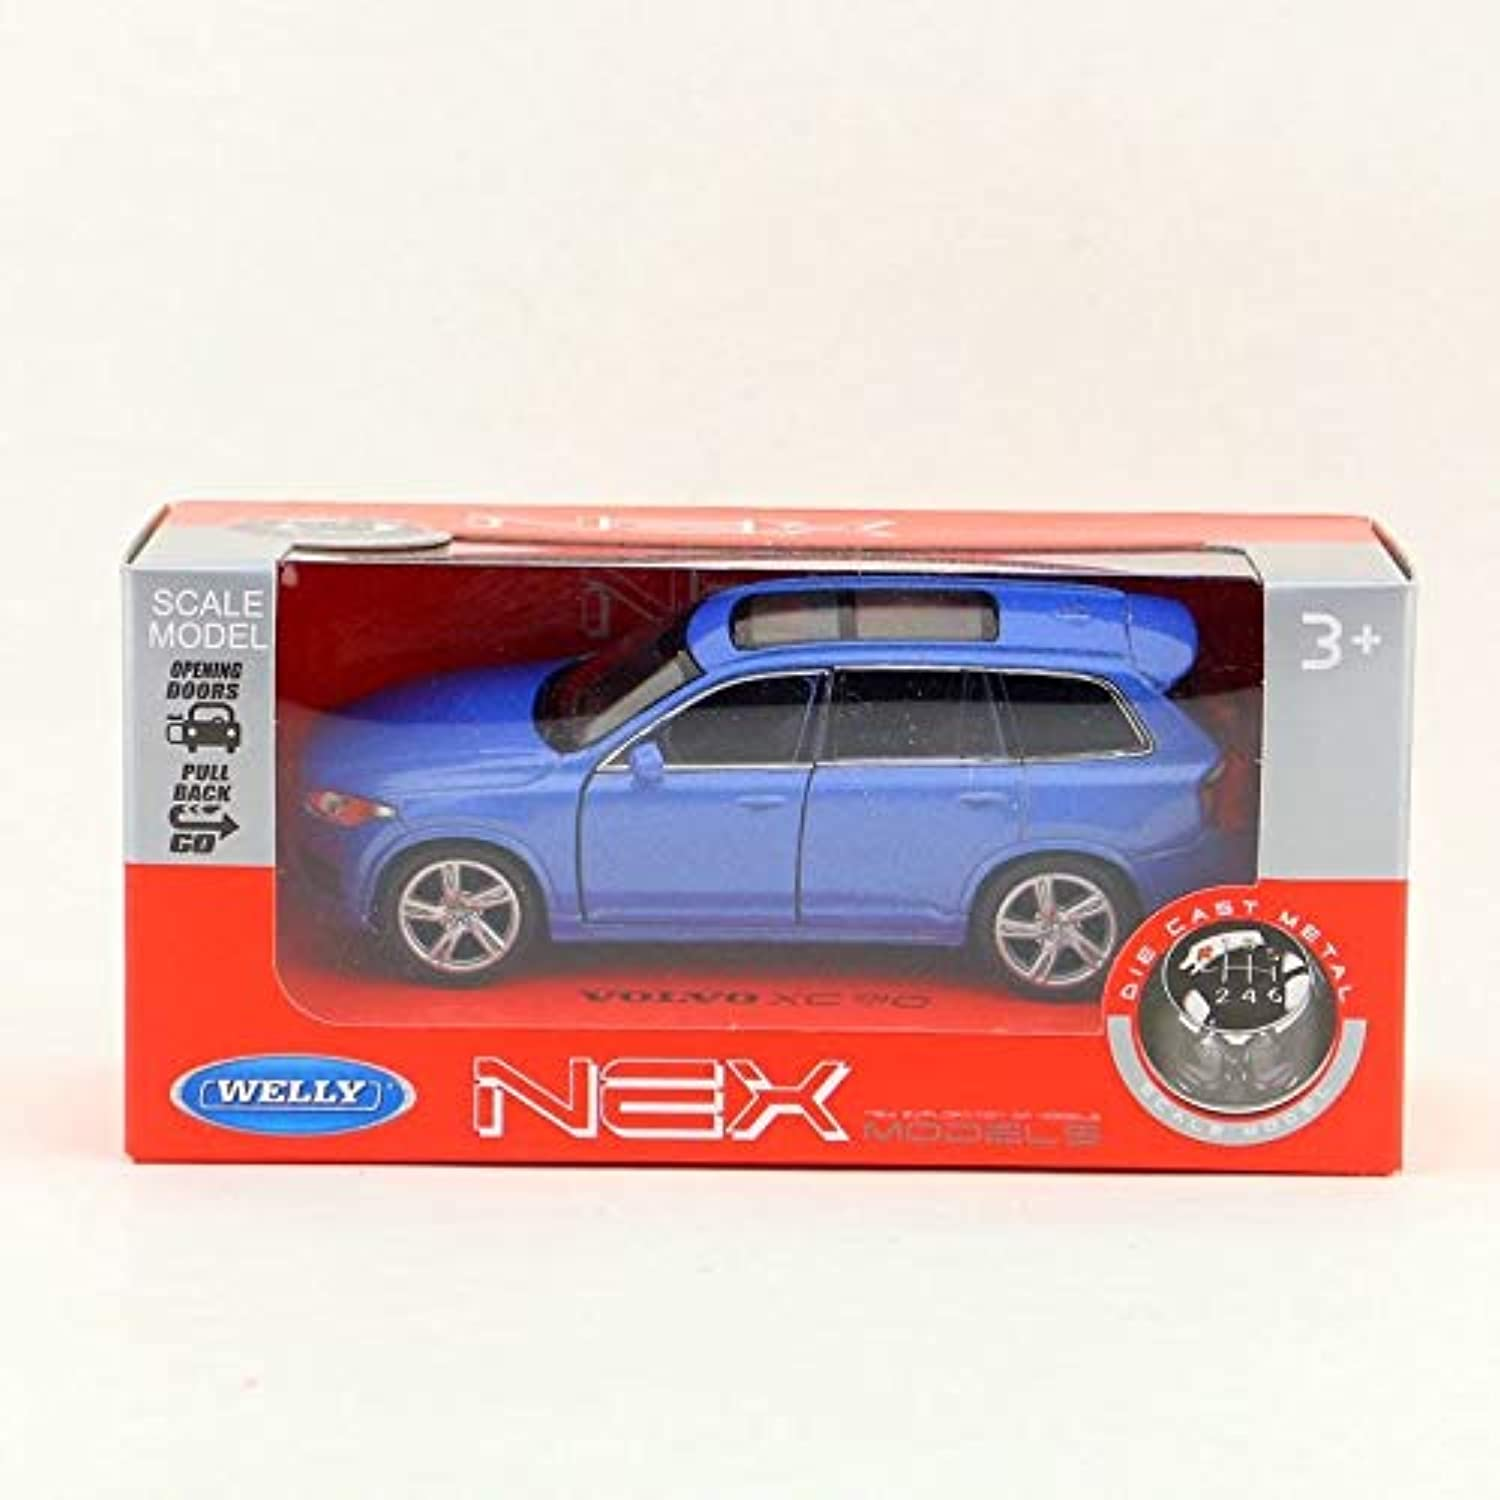 Generic 1 36 Scale Volvo XC90 SUV Alloy Car Model Pull Back Car Toy 2 Open Door Toy Vehicle for Kids Birthday Gift D